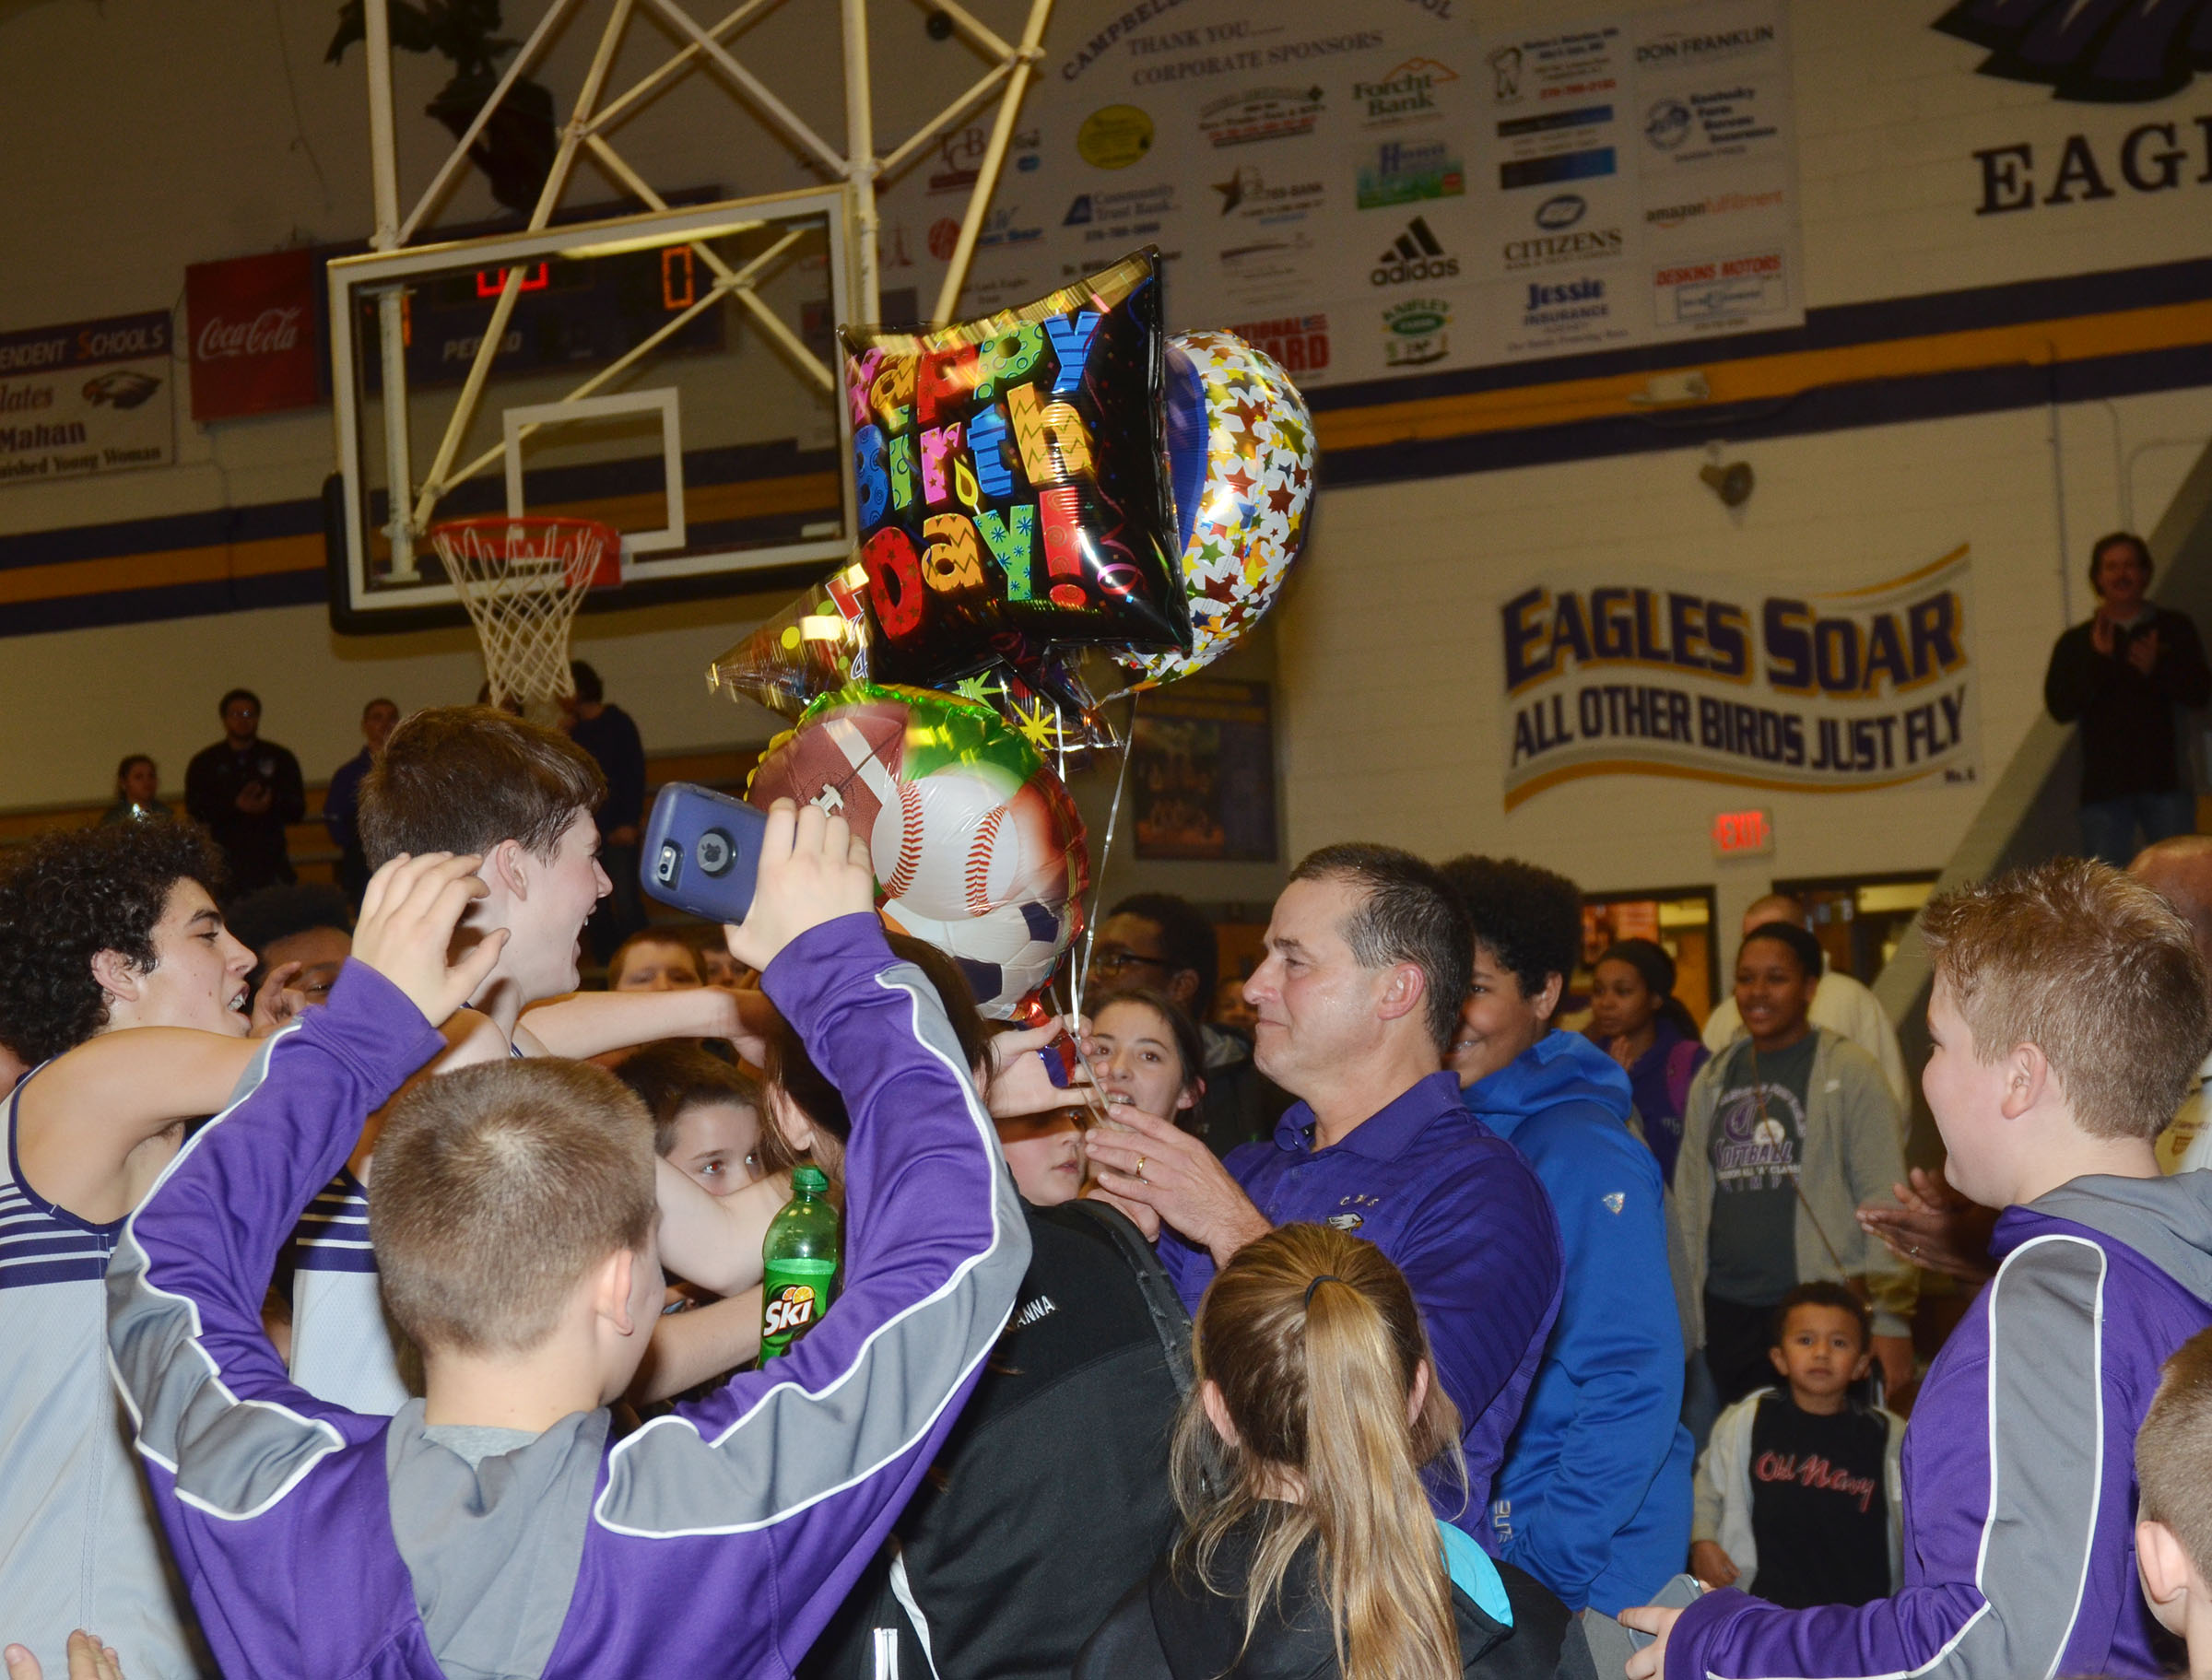 CMS boys' basketball coach Lynn Kearney receives balloons from his players in honor of his birthday, which was the same day as the championship game.